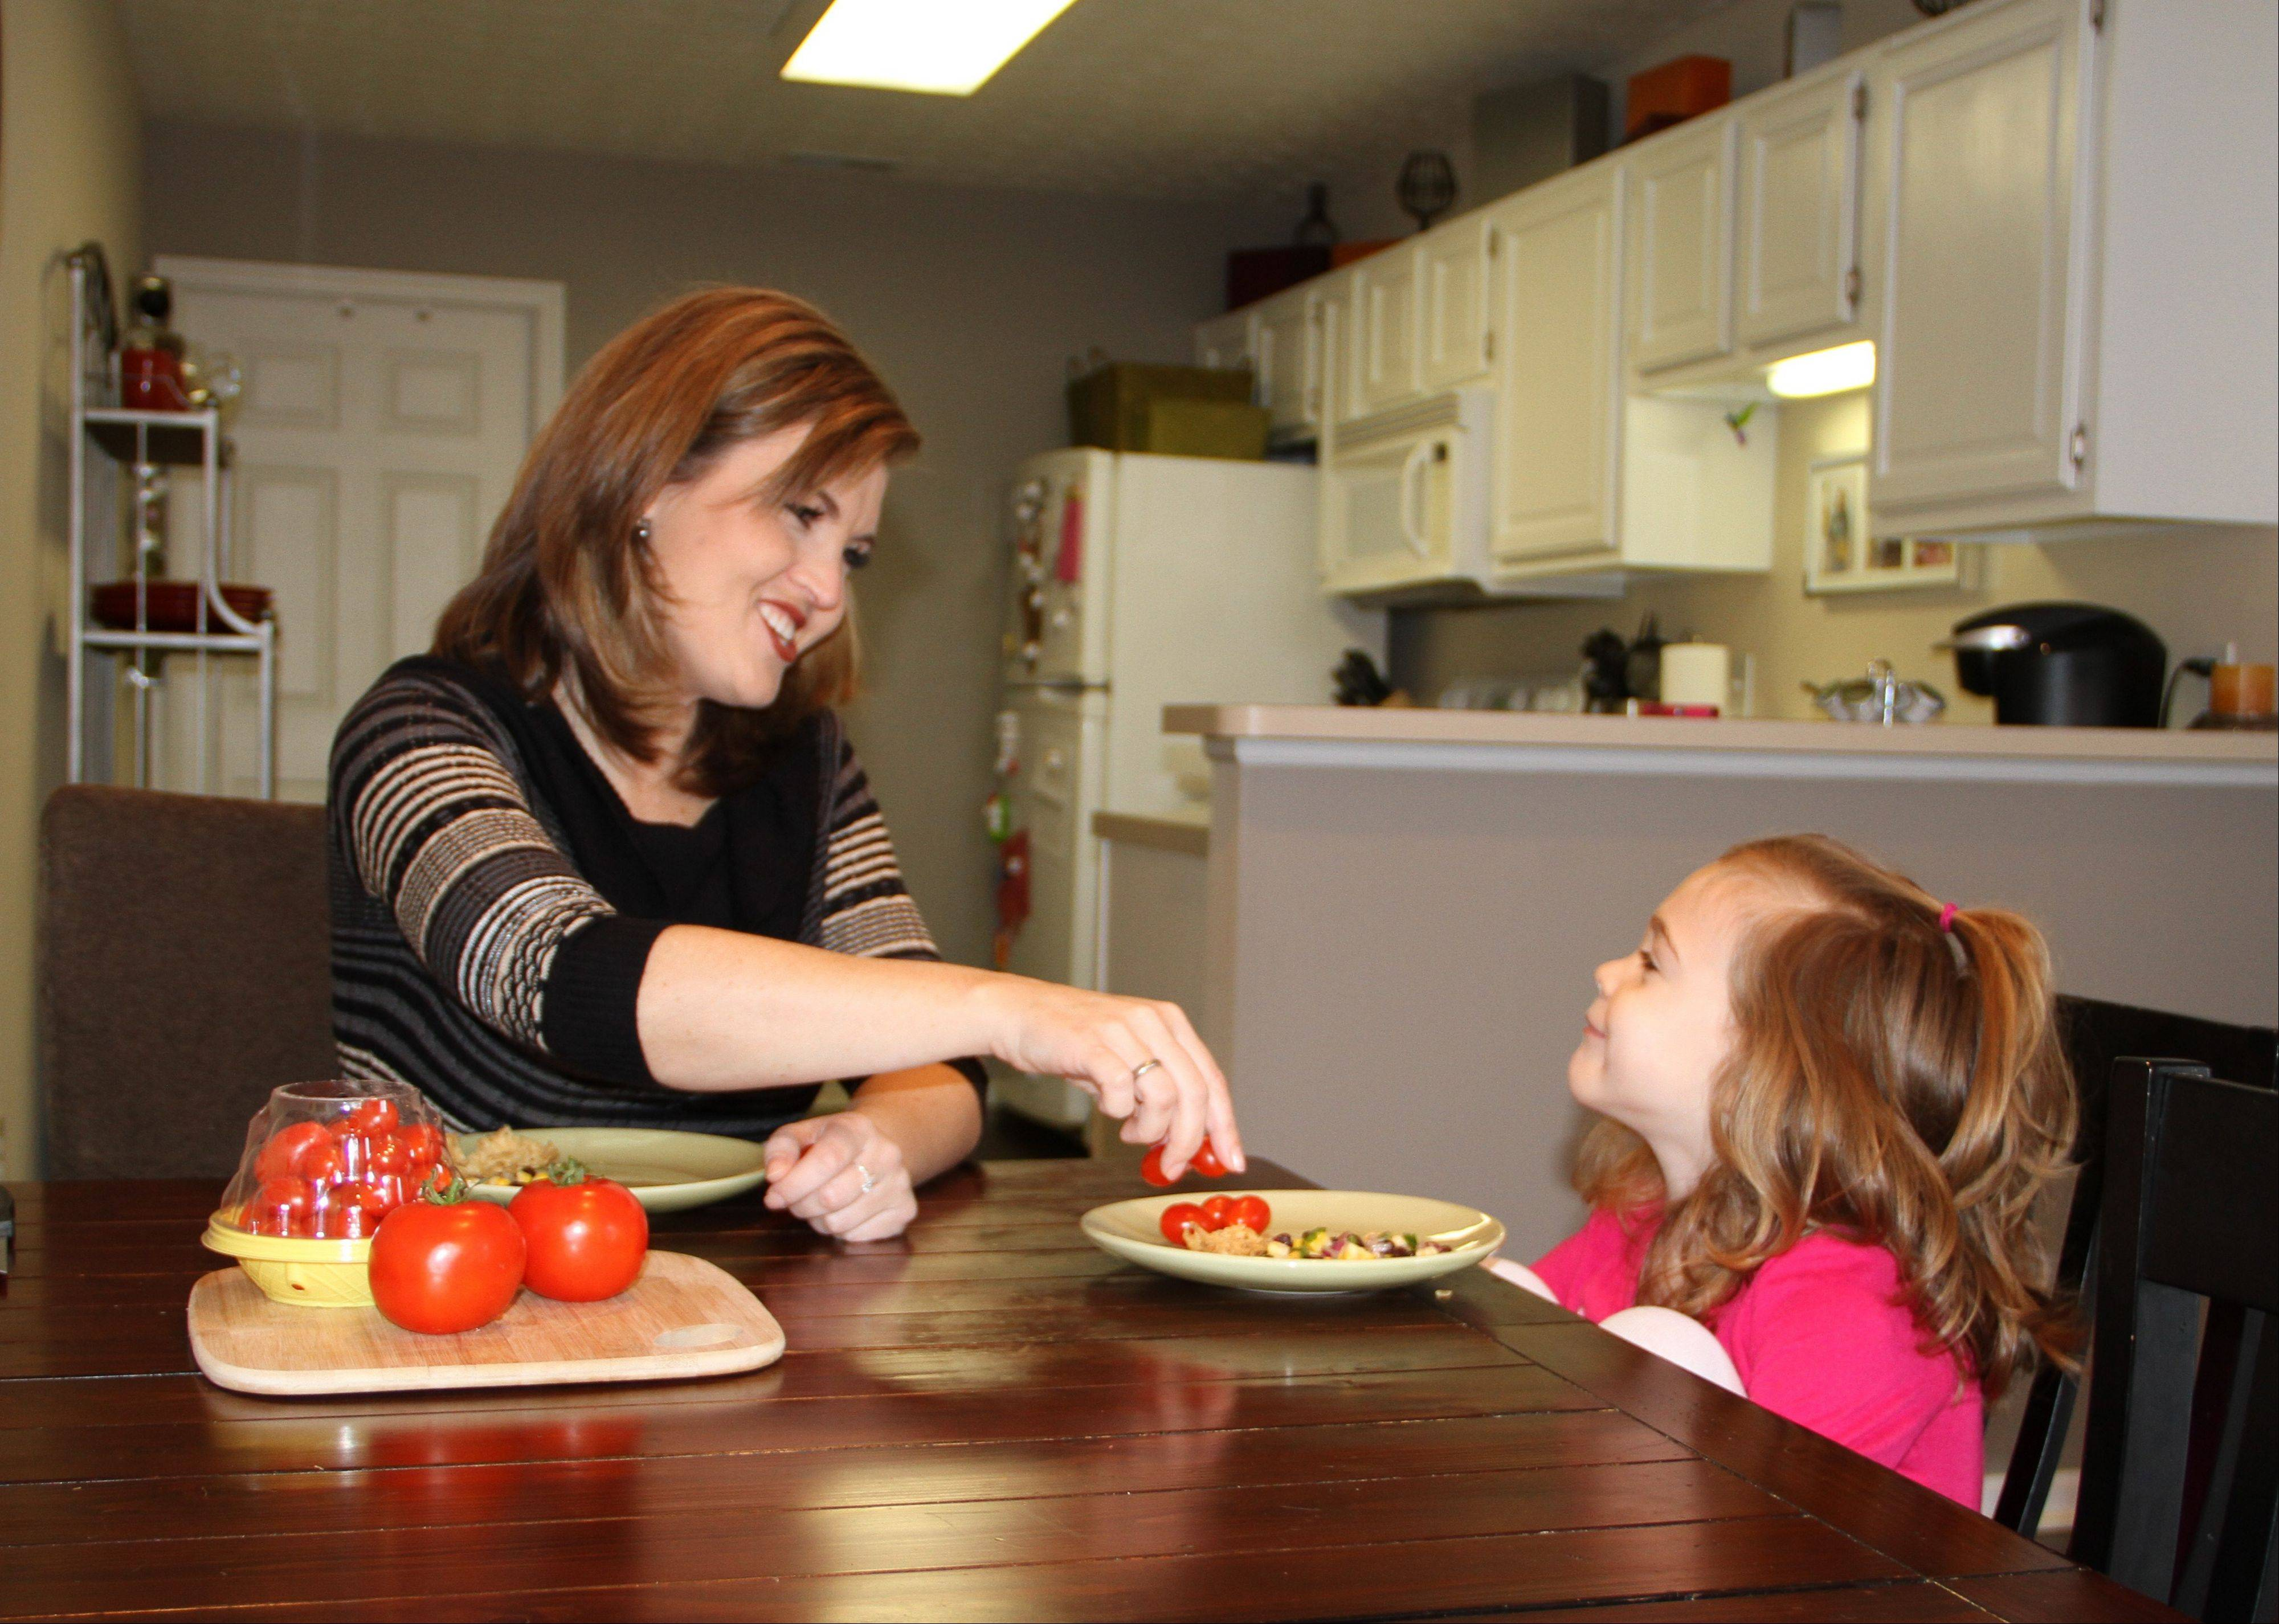 Shannon McCormick, left, serves a tomato to her 4-year-old daughter Sophie Chapman at their home in Gahanna, Ohio. Although not fond of tomatoes, McCormick keeps that fact from her daughter, who loves them.